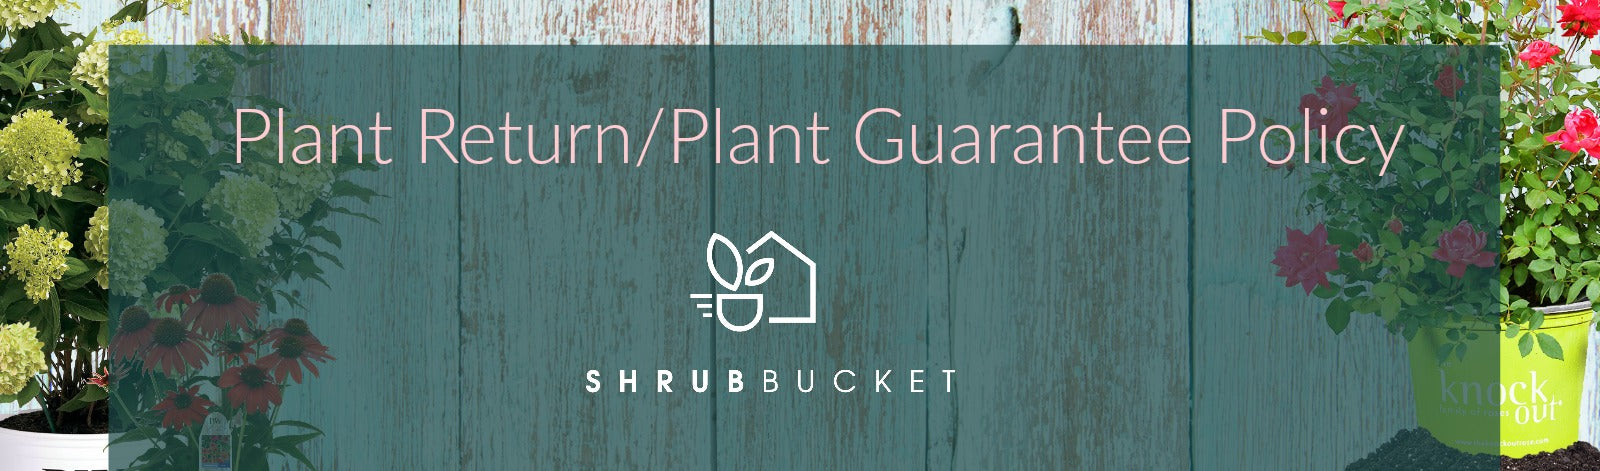 ShrubBucket Refund Plant Guarantee Policy